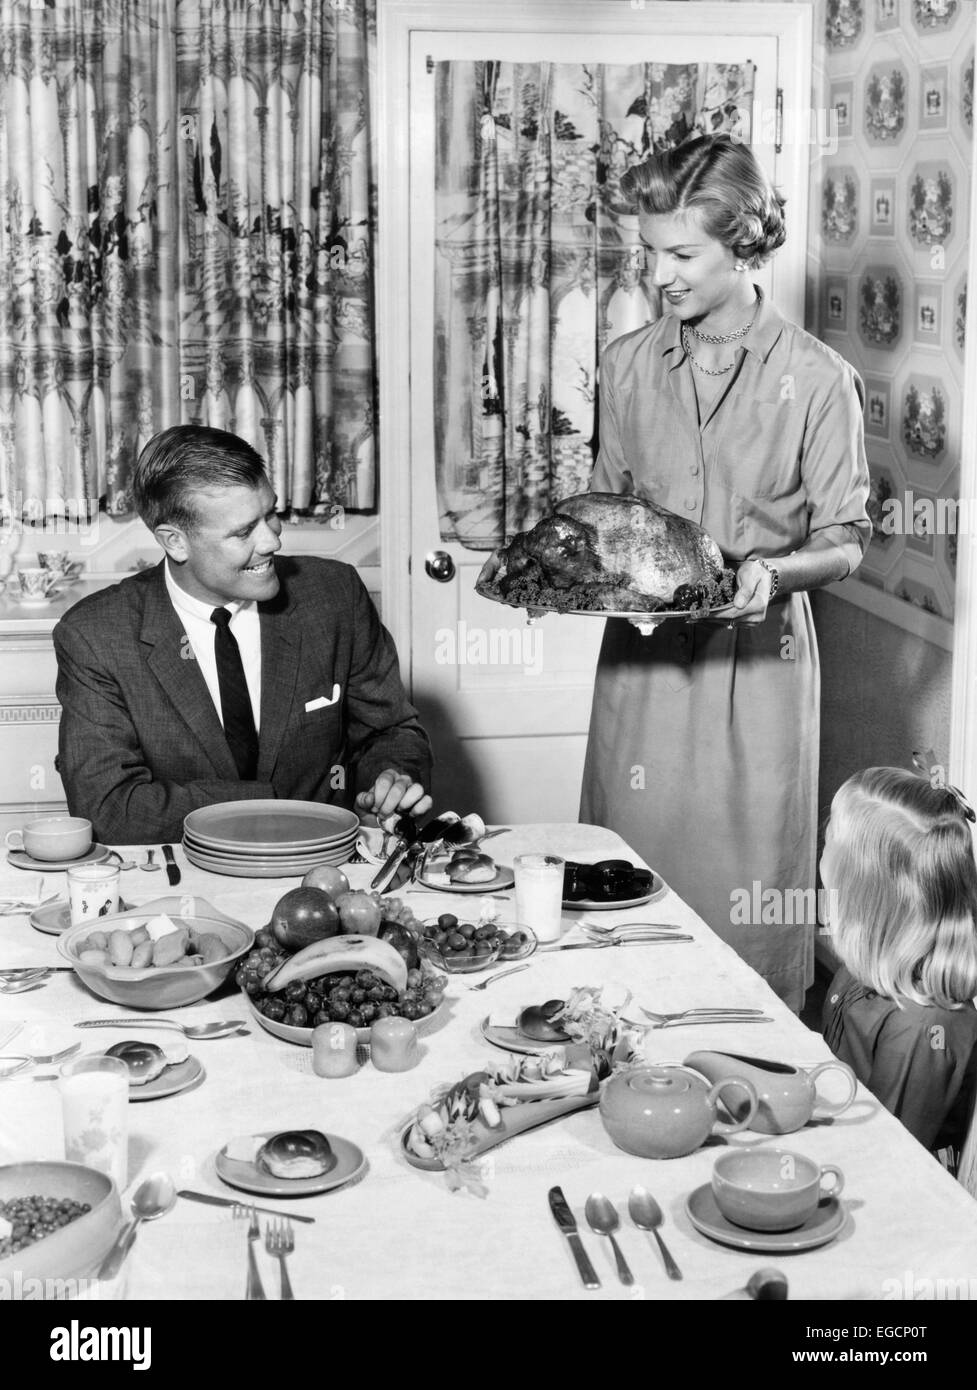 1950s THANKSGIVING FAMILY AT DINING ROOM TABLE MOM HOLDING TURKEY ON PLATTER PRINT CURTAINS SETTING WALLPAPER